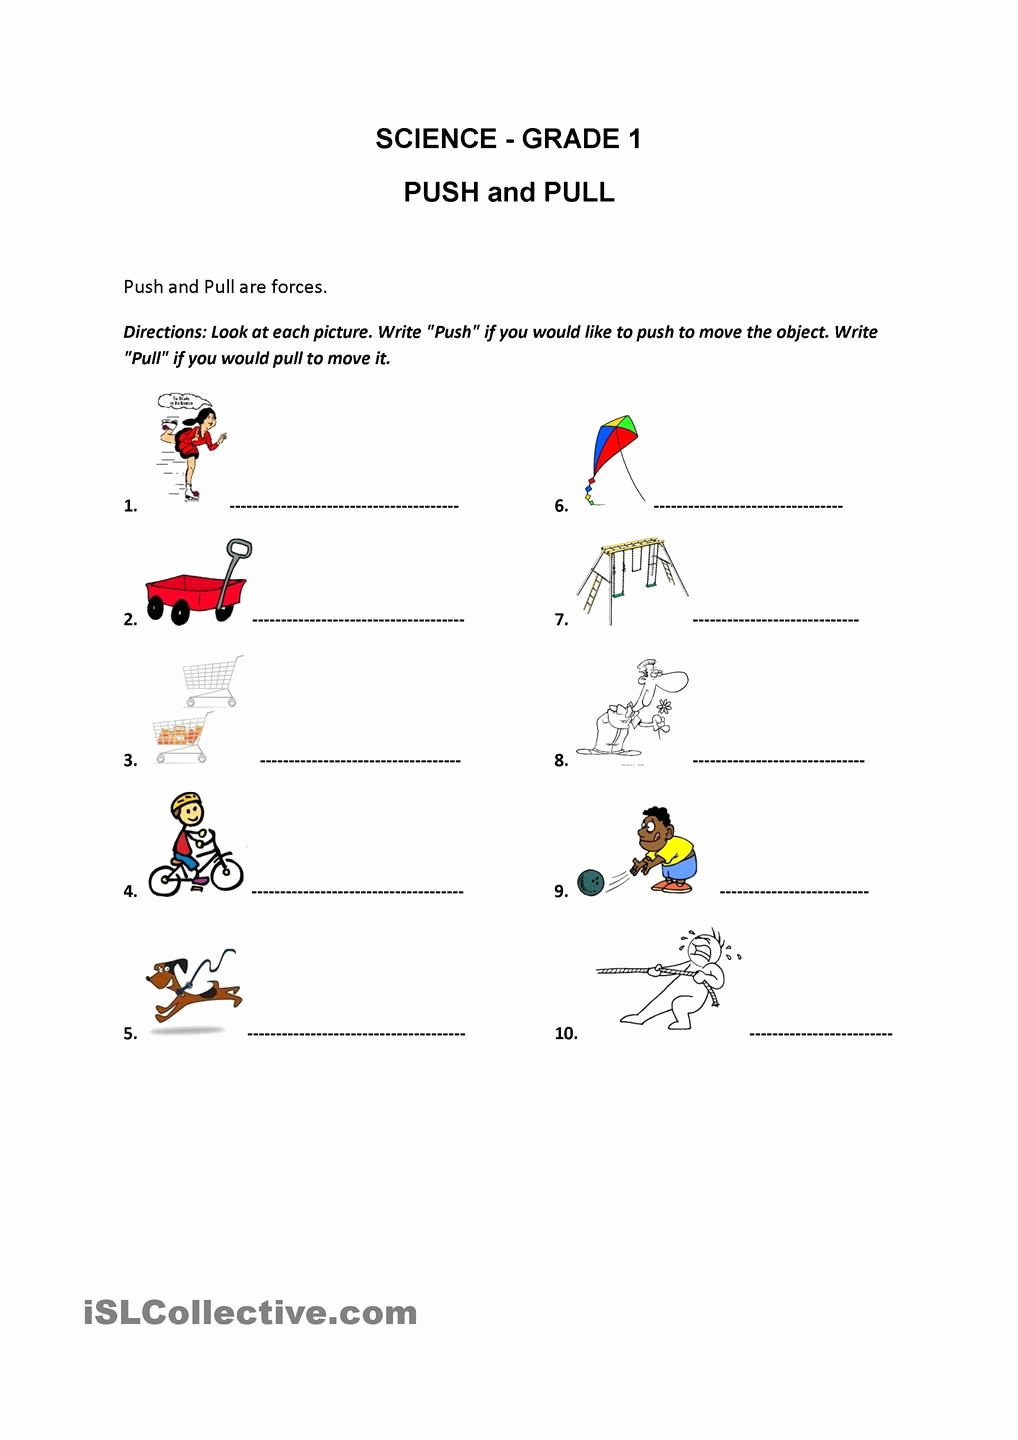 Force and Motion Printable Worksheets Inspirational Push and Pull